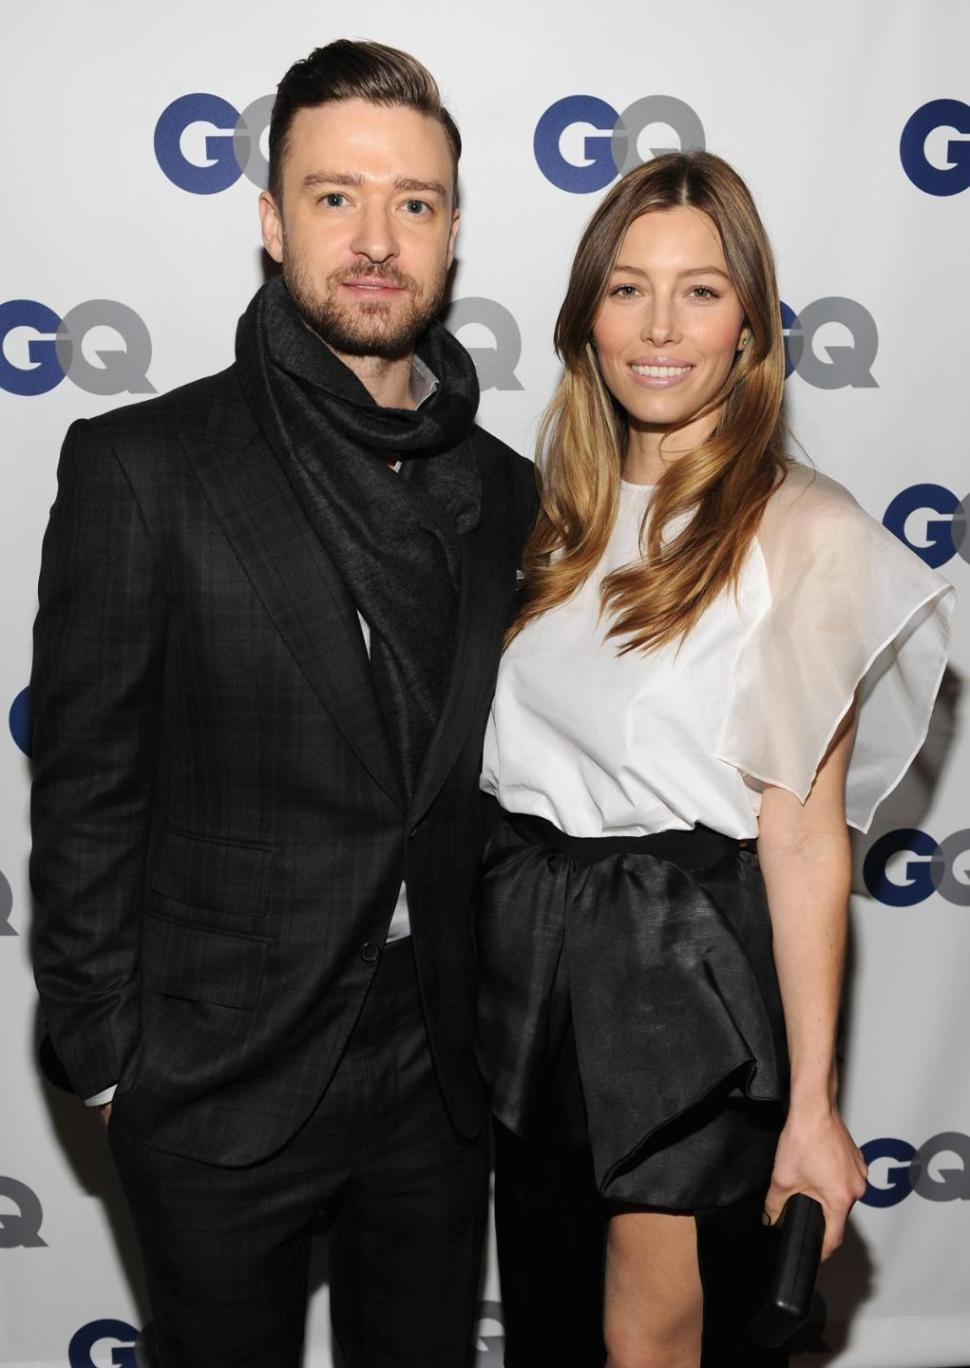 Justin Timberlake and Jessica Biel are expecting a baby in April